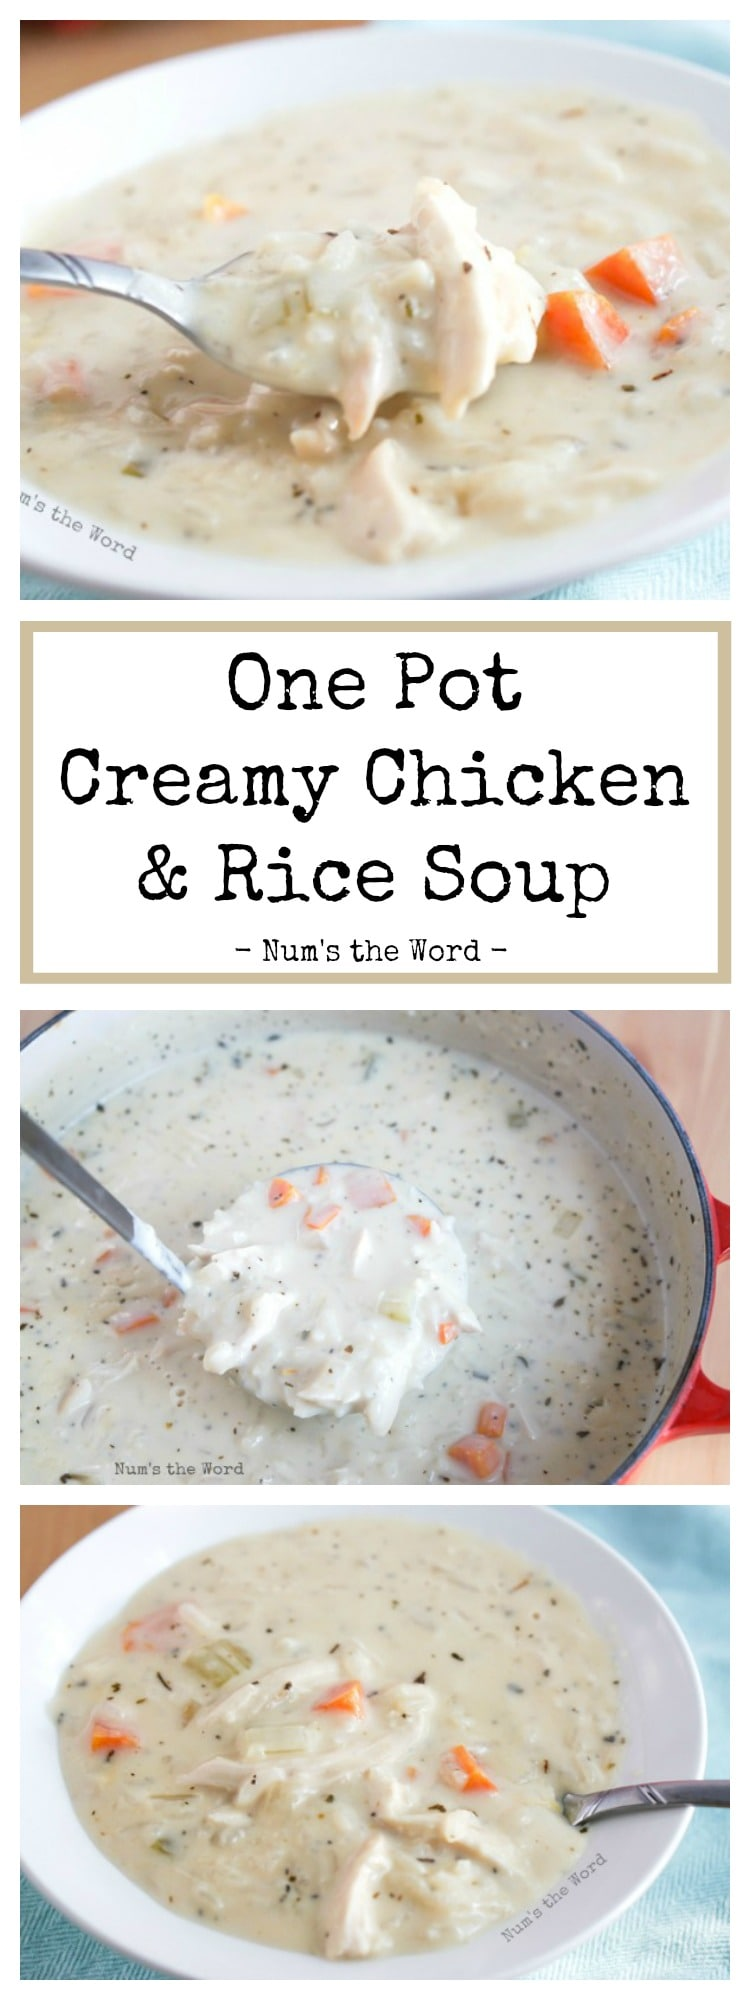 One Pot Creamy Chicken & Rice Soup - Pinterest long style pin collage of images